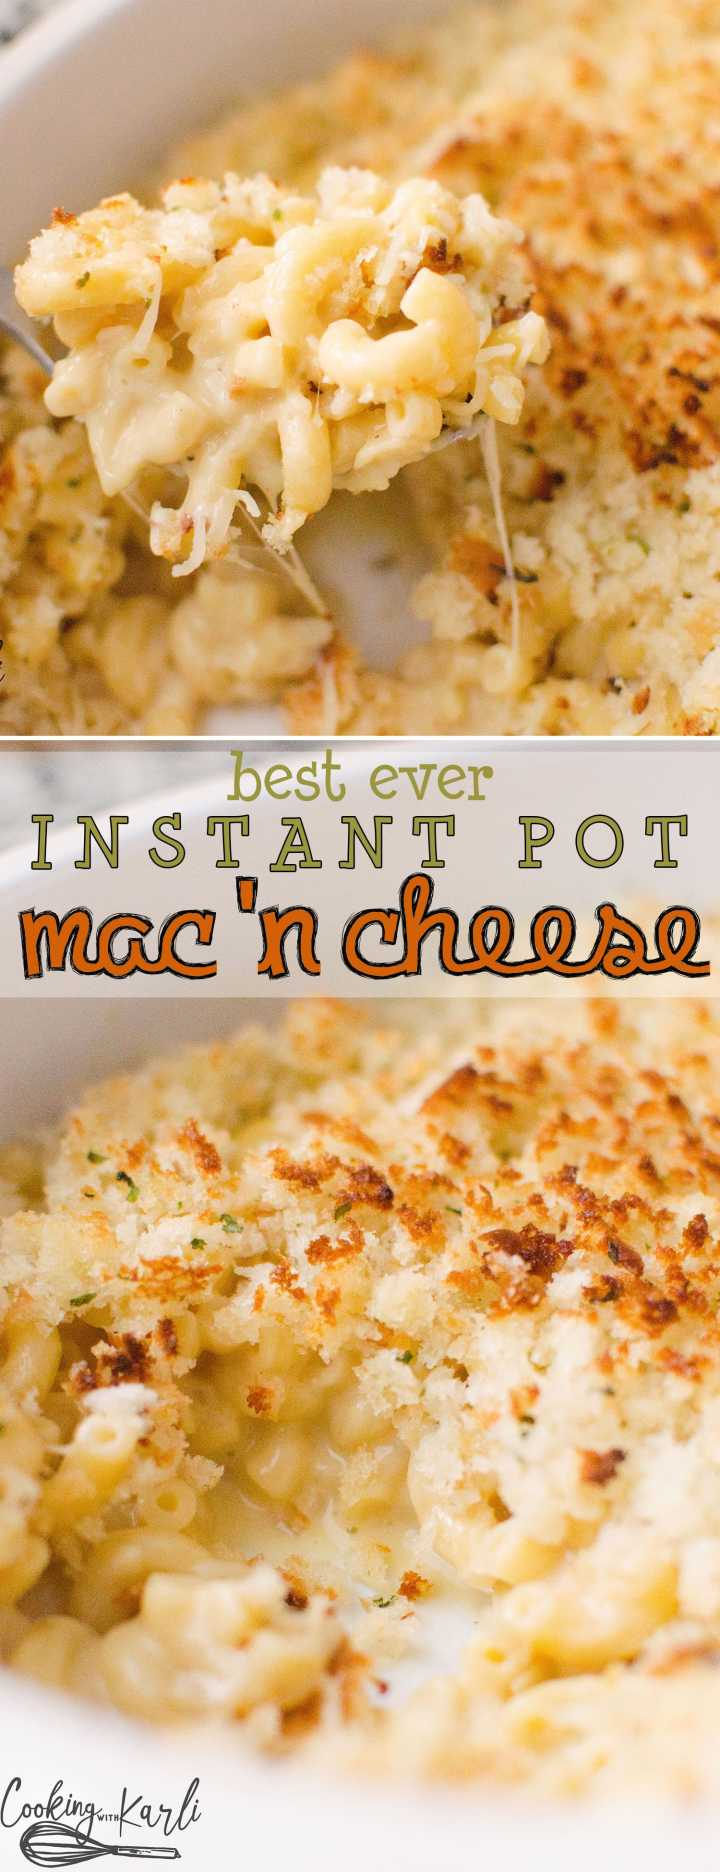 Instant Pot Mac 'n Cheese is equally fast and delicious! Perfectly cooked pasta, from scratch sauce and a crispy breadcrumb topping will knock your socks off! Perfect for ages 1-101!-Cooking with Karli- #instantpot #recip #dinner #maindish #side